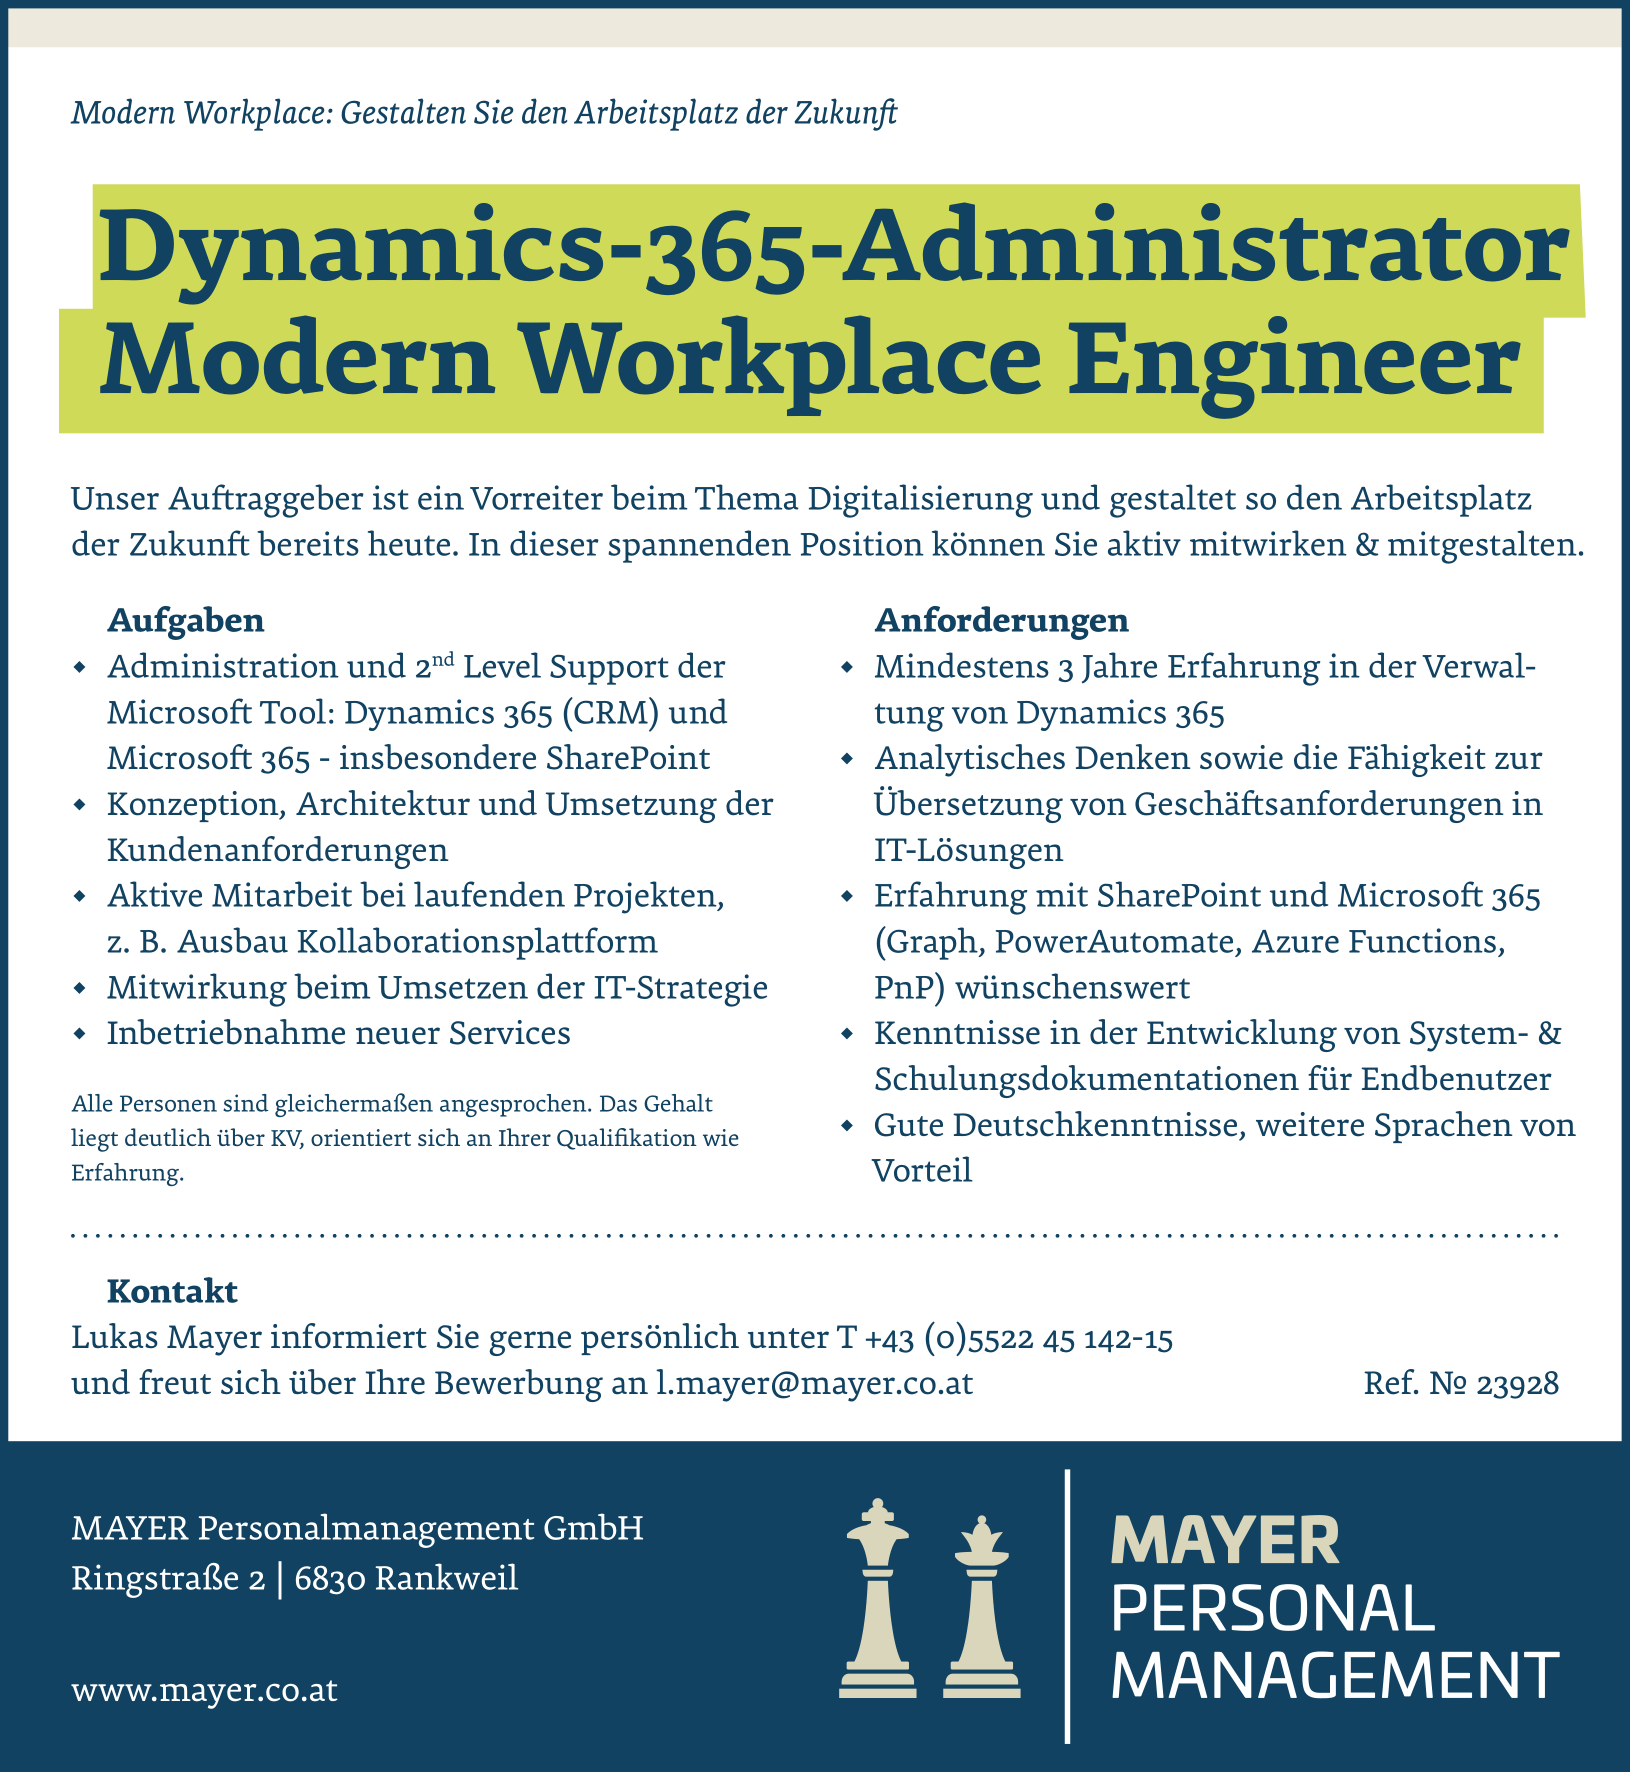 Dynamics-365-Administrator Modern Workplace Engineer